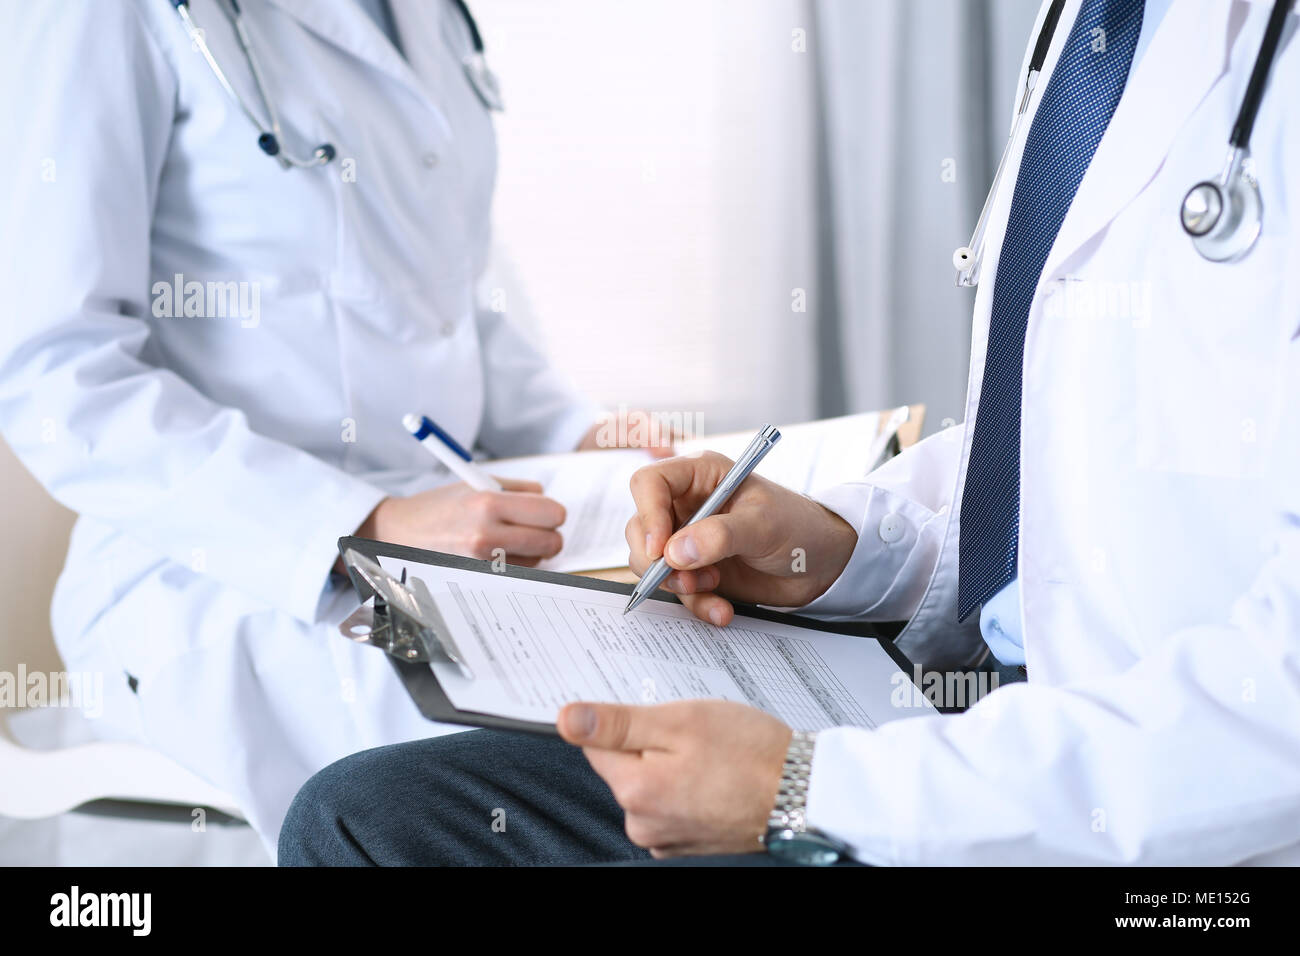 Two unknown doctors filling up medical form on clipboard, just hands closeup. Physicians asking question to patient or discussing medication program. Healthcare, insurance and medicine concept - Stock Image